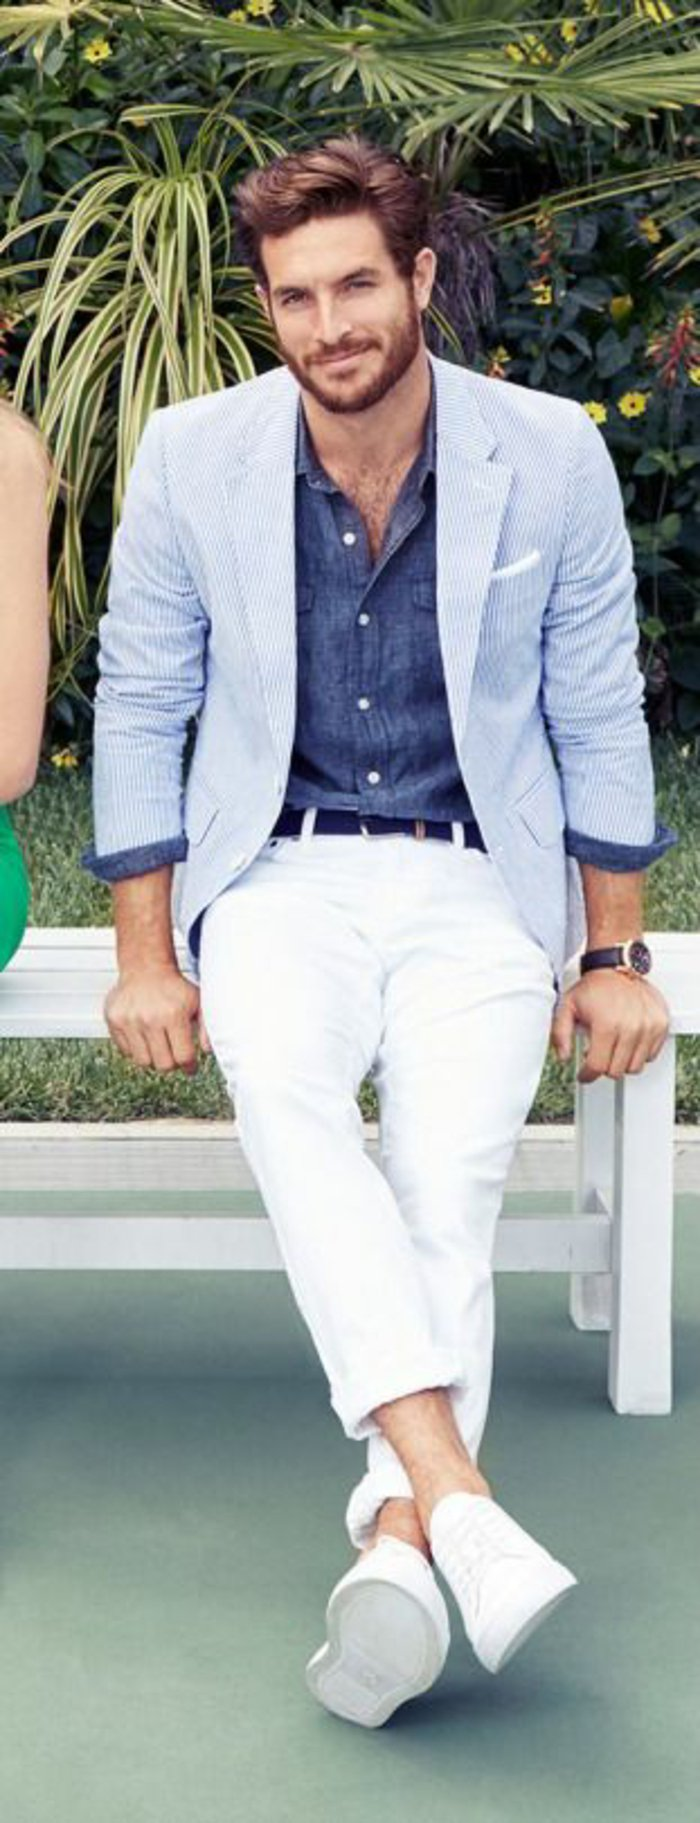 superbe-chemise-manche-courte-mode-2016-cool-idee